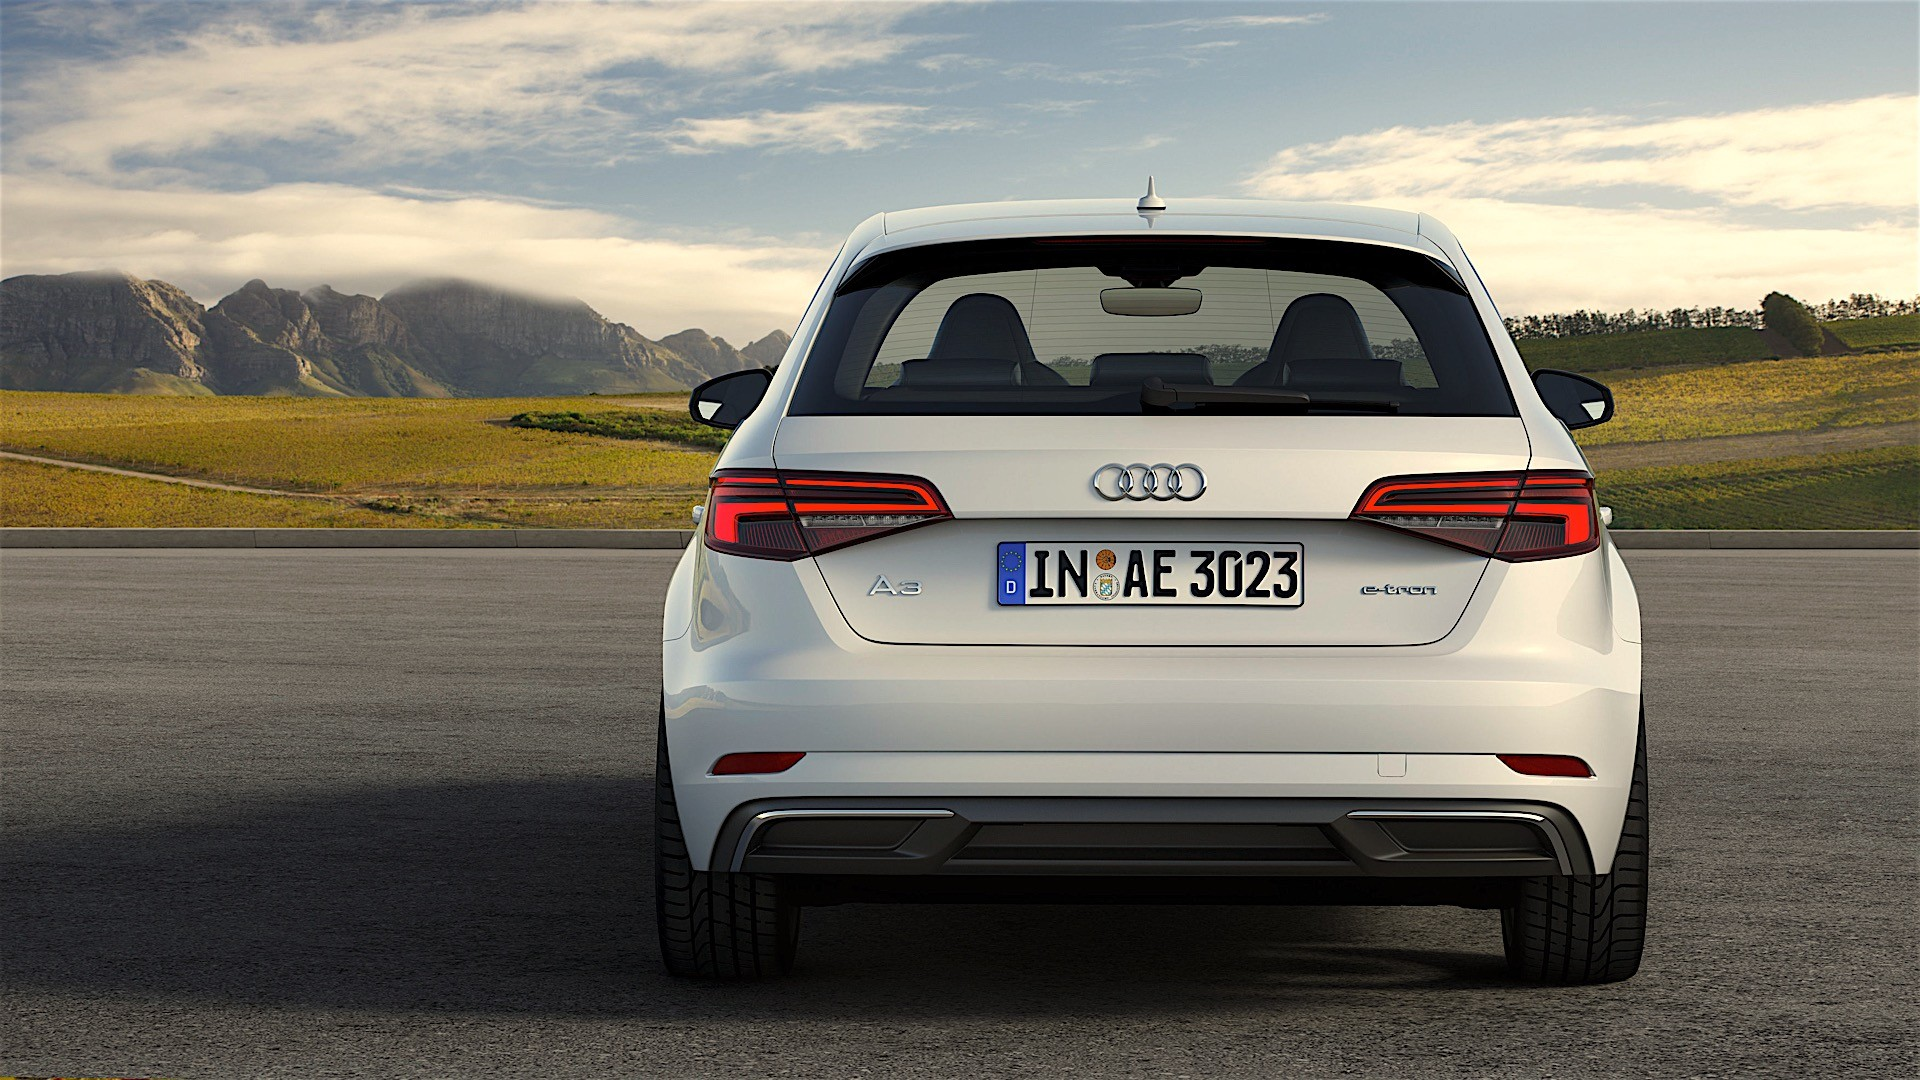 2017 Audi A3 Facelift Configurator Launched in Germany, S3 Not Ready ...